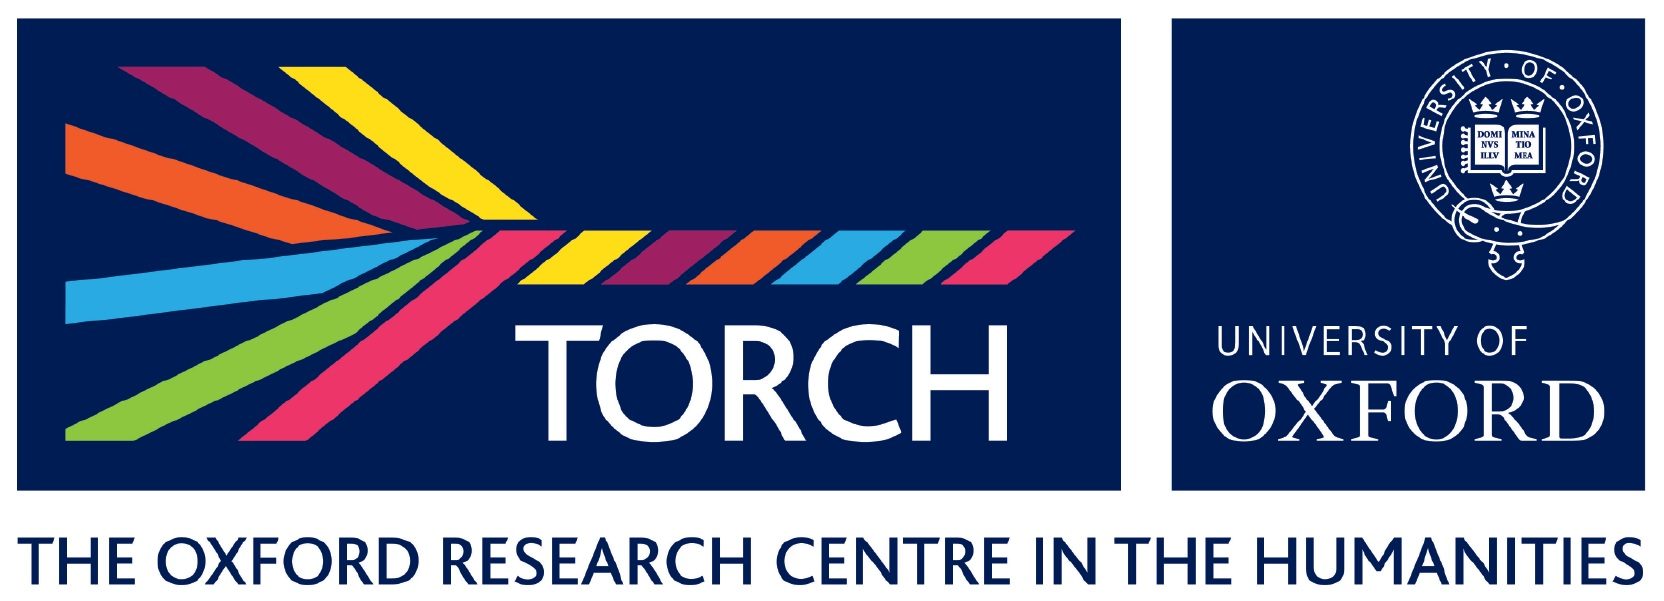 Torch New Logo